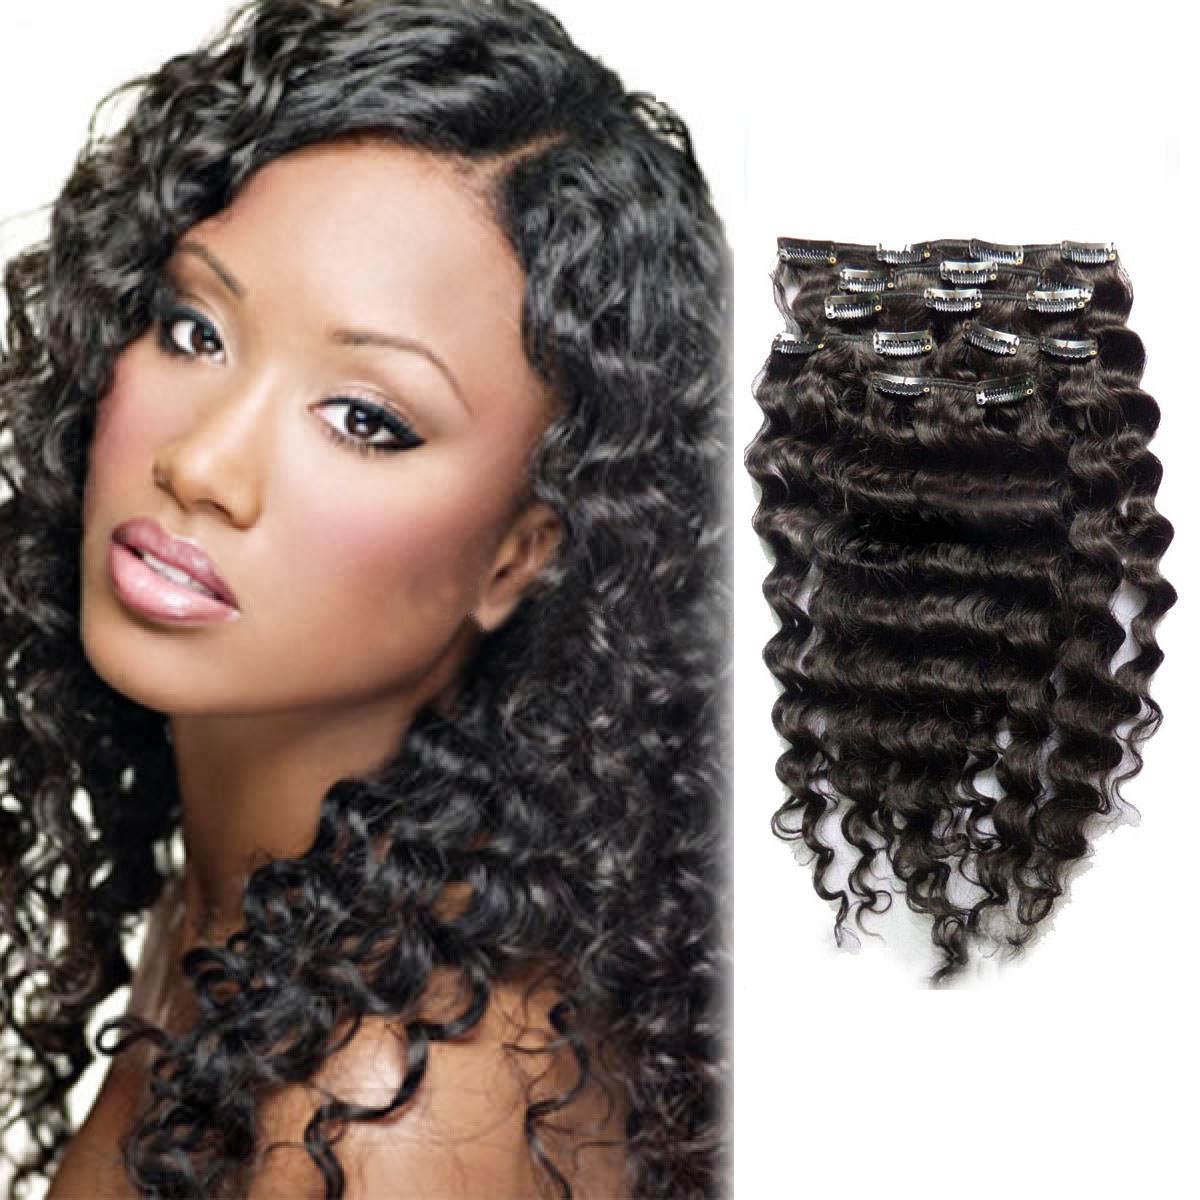 16 Inch Versatile 1b Natural Black Clip In Hair Extensions Curly 7